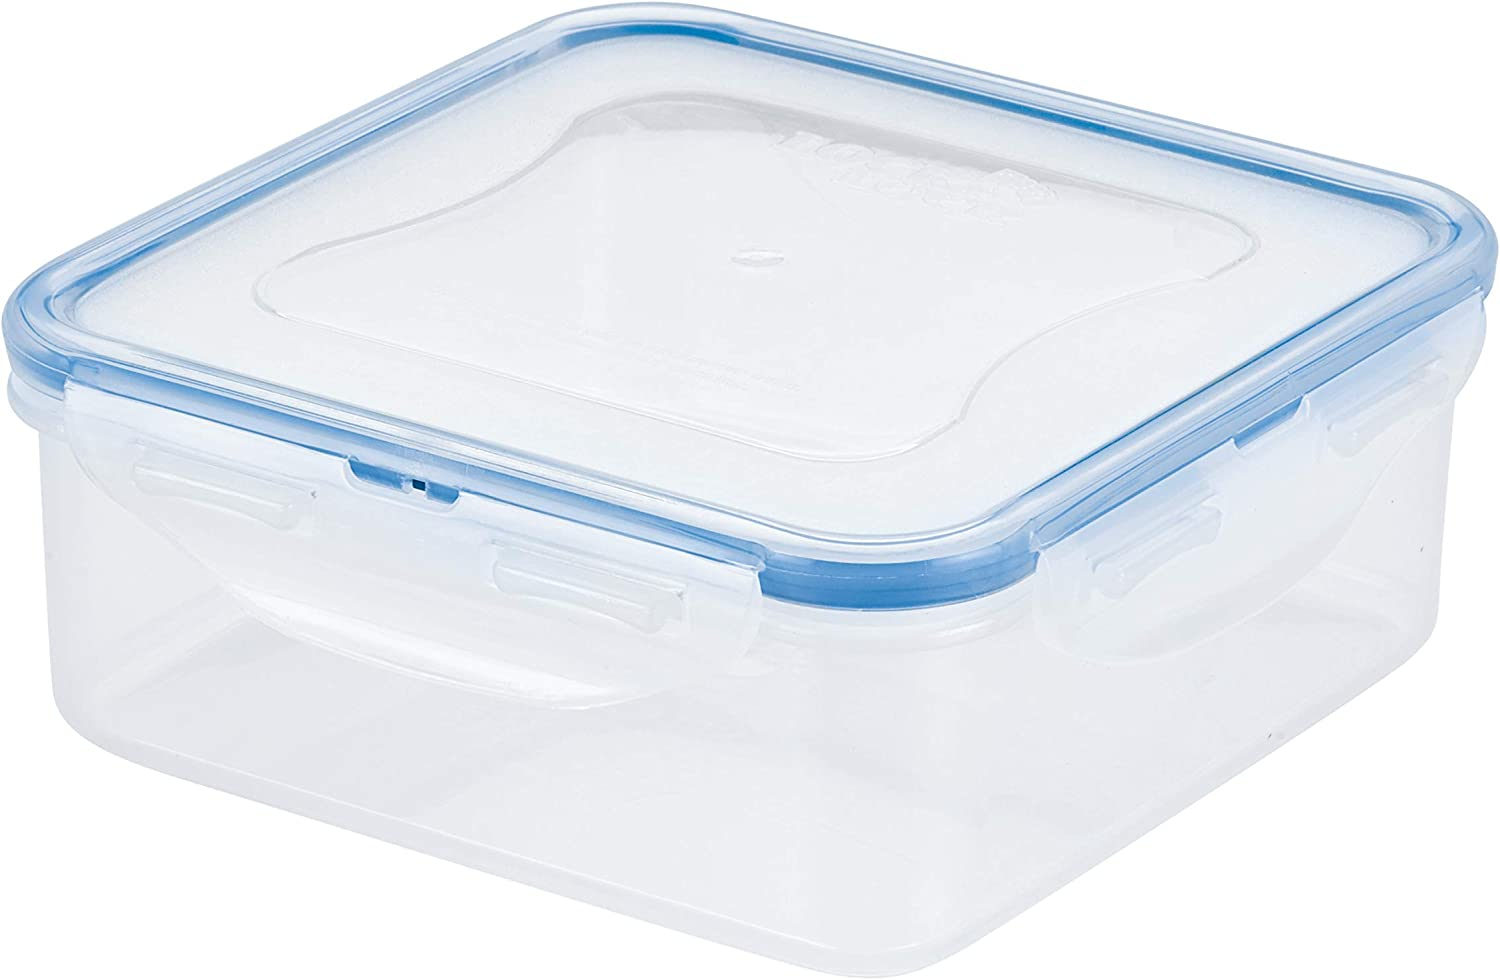 LOCK & LOCK Easy Essentials Food Storage lids/Airtight containers, BPA Free, Square-29 oz-for Veggies, Clear